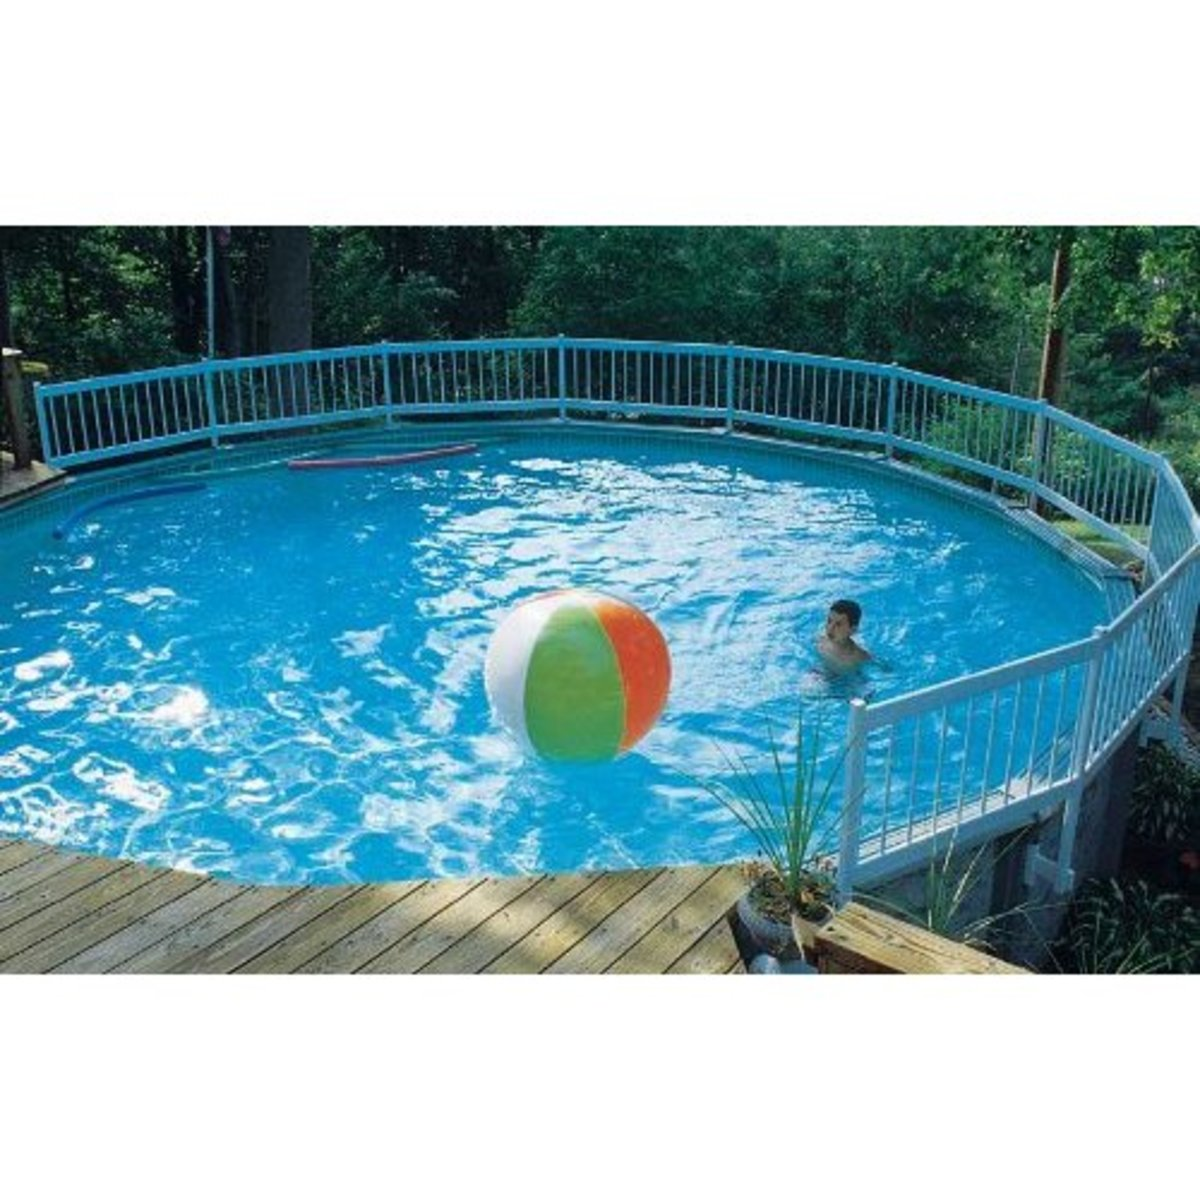 Above Ground Swimming Pools Many Benefits Helpful Videos